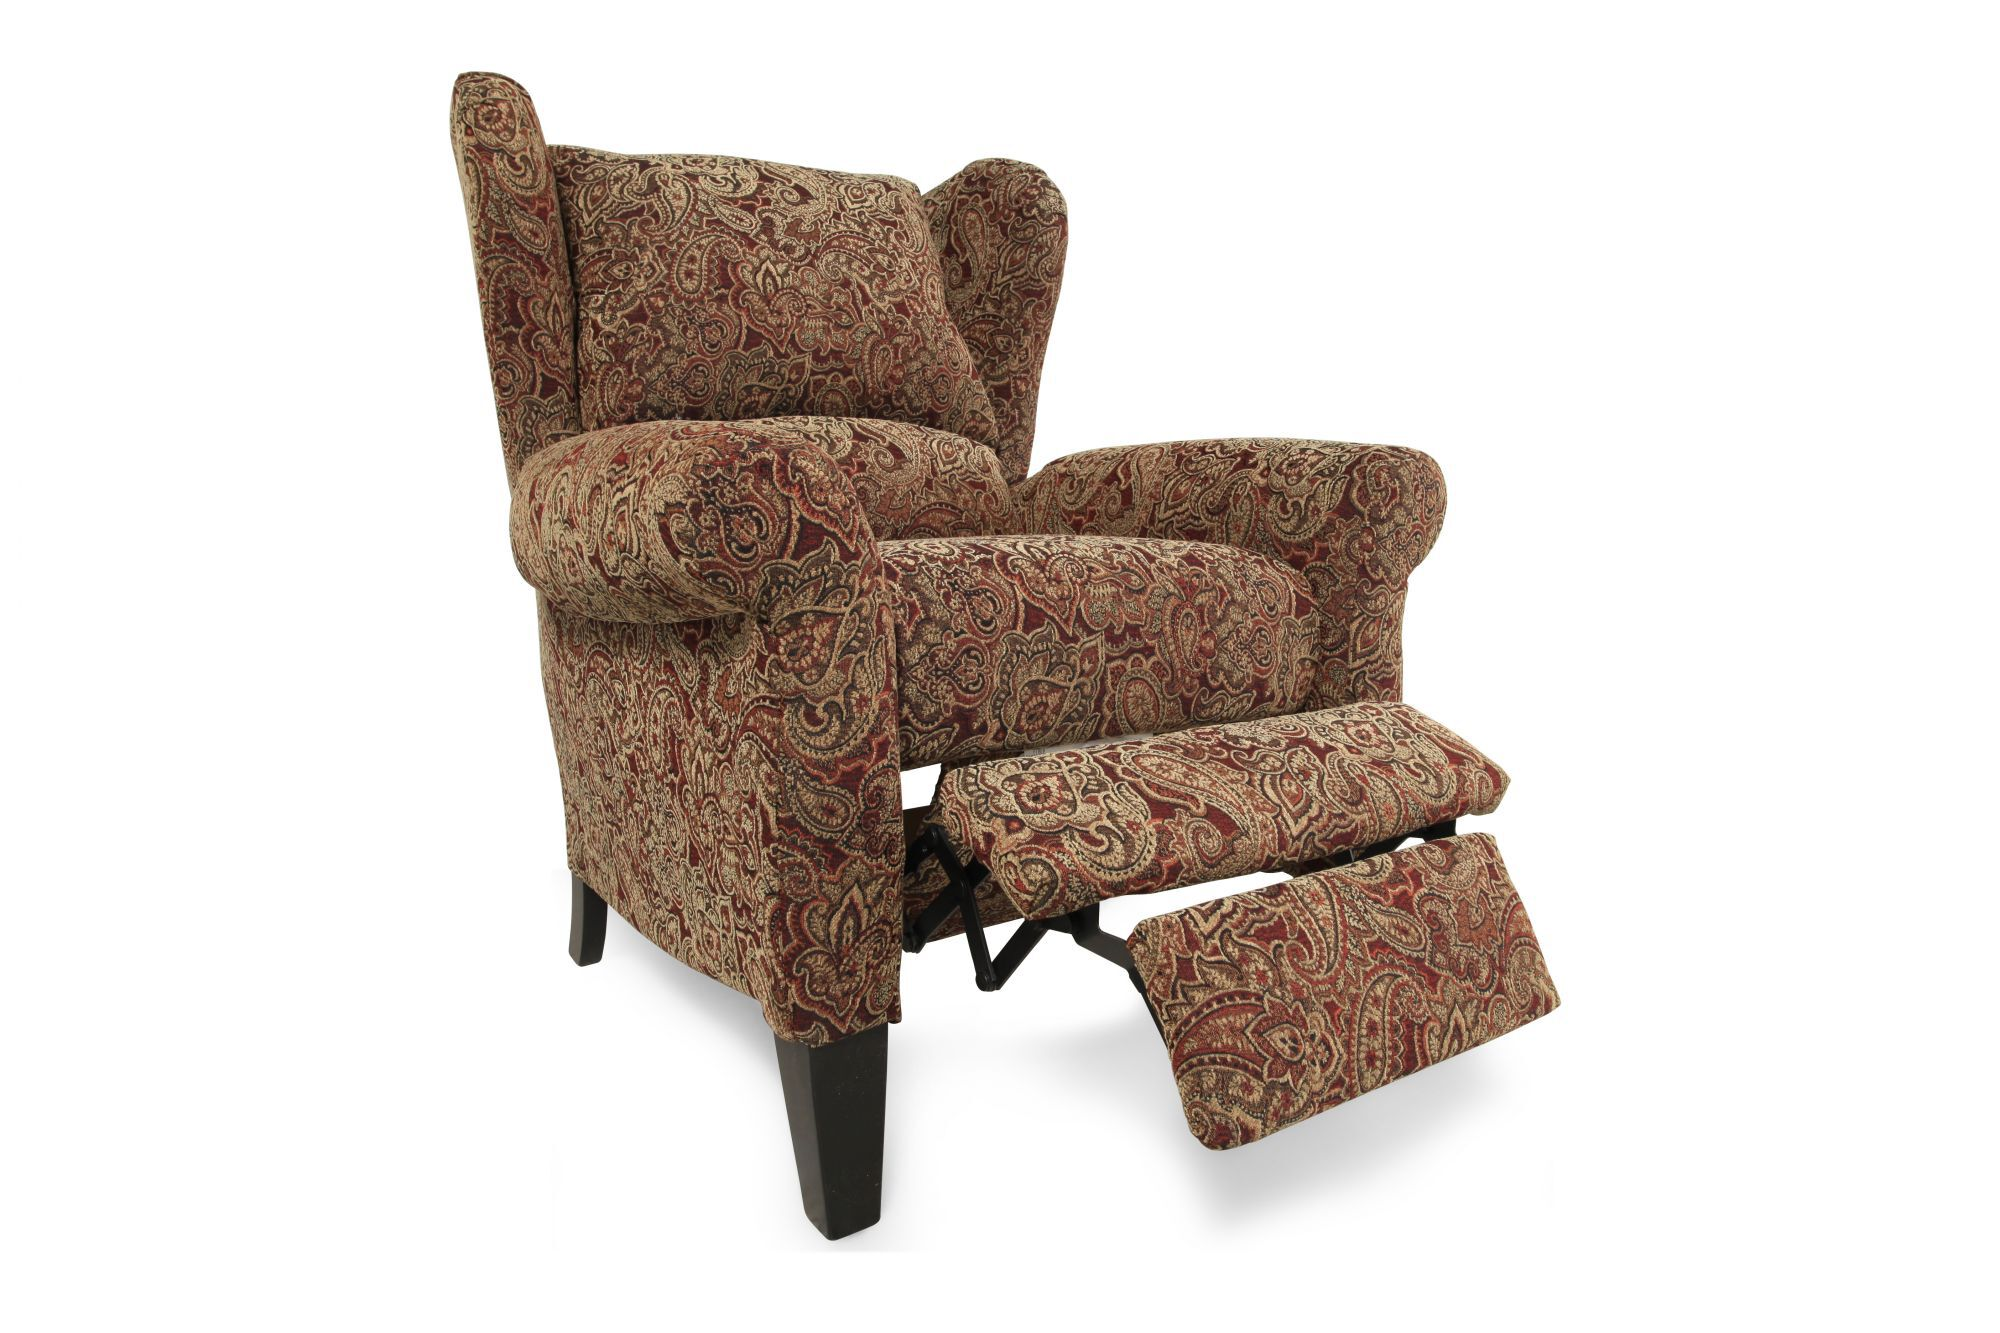 Lane Chatham Classic High Leg Recliner  sc 1 st  Mathis Brothers & Lane Chatham Classic High Leg Recliner | Mathis Brothers Furniture islam-shia.org